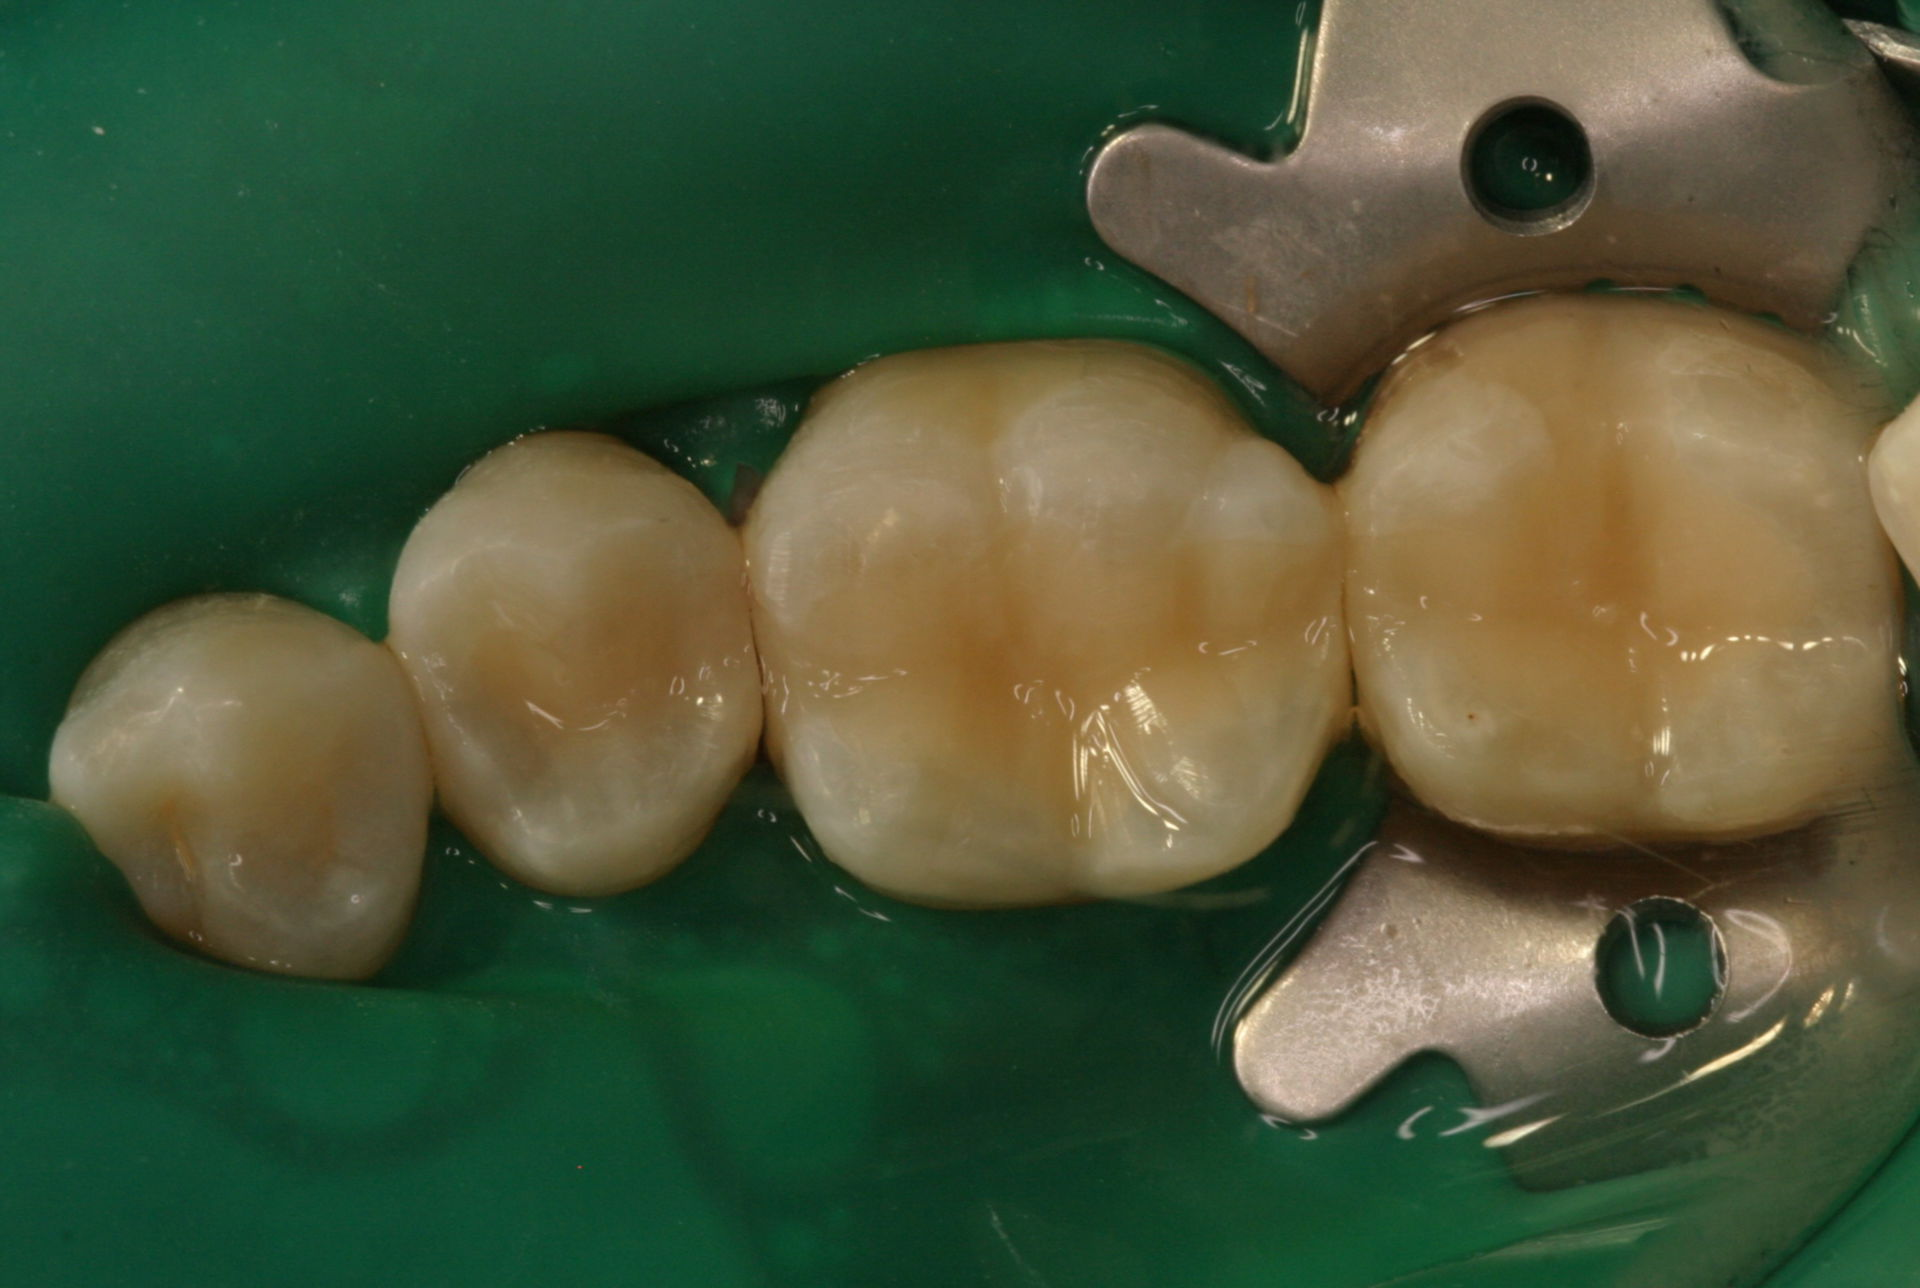 45-47 after provision of adhesive fillings